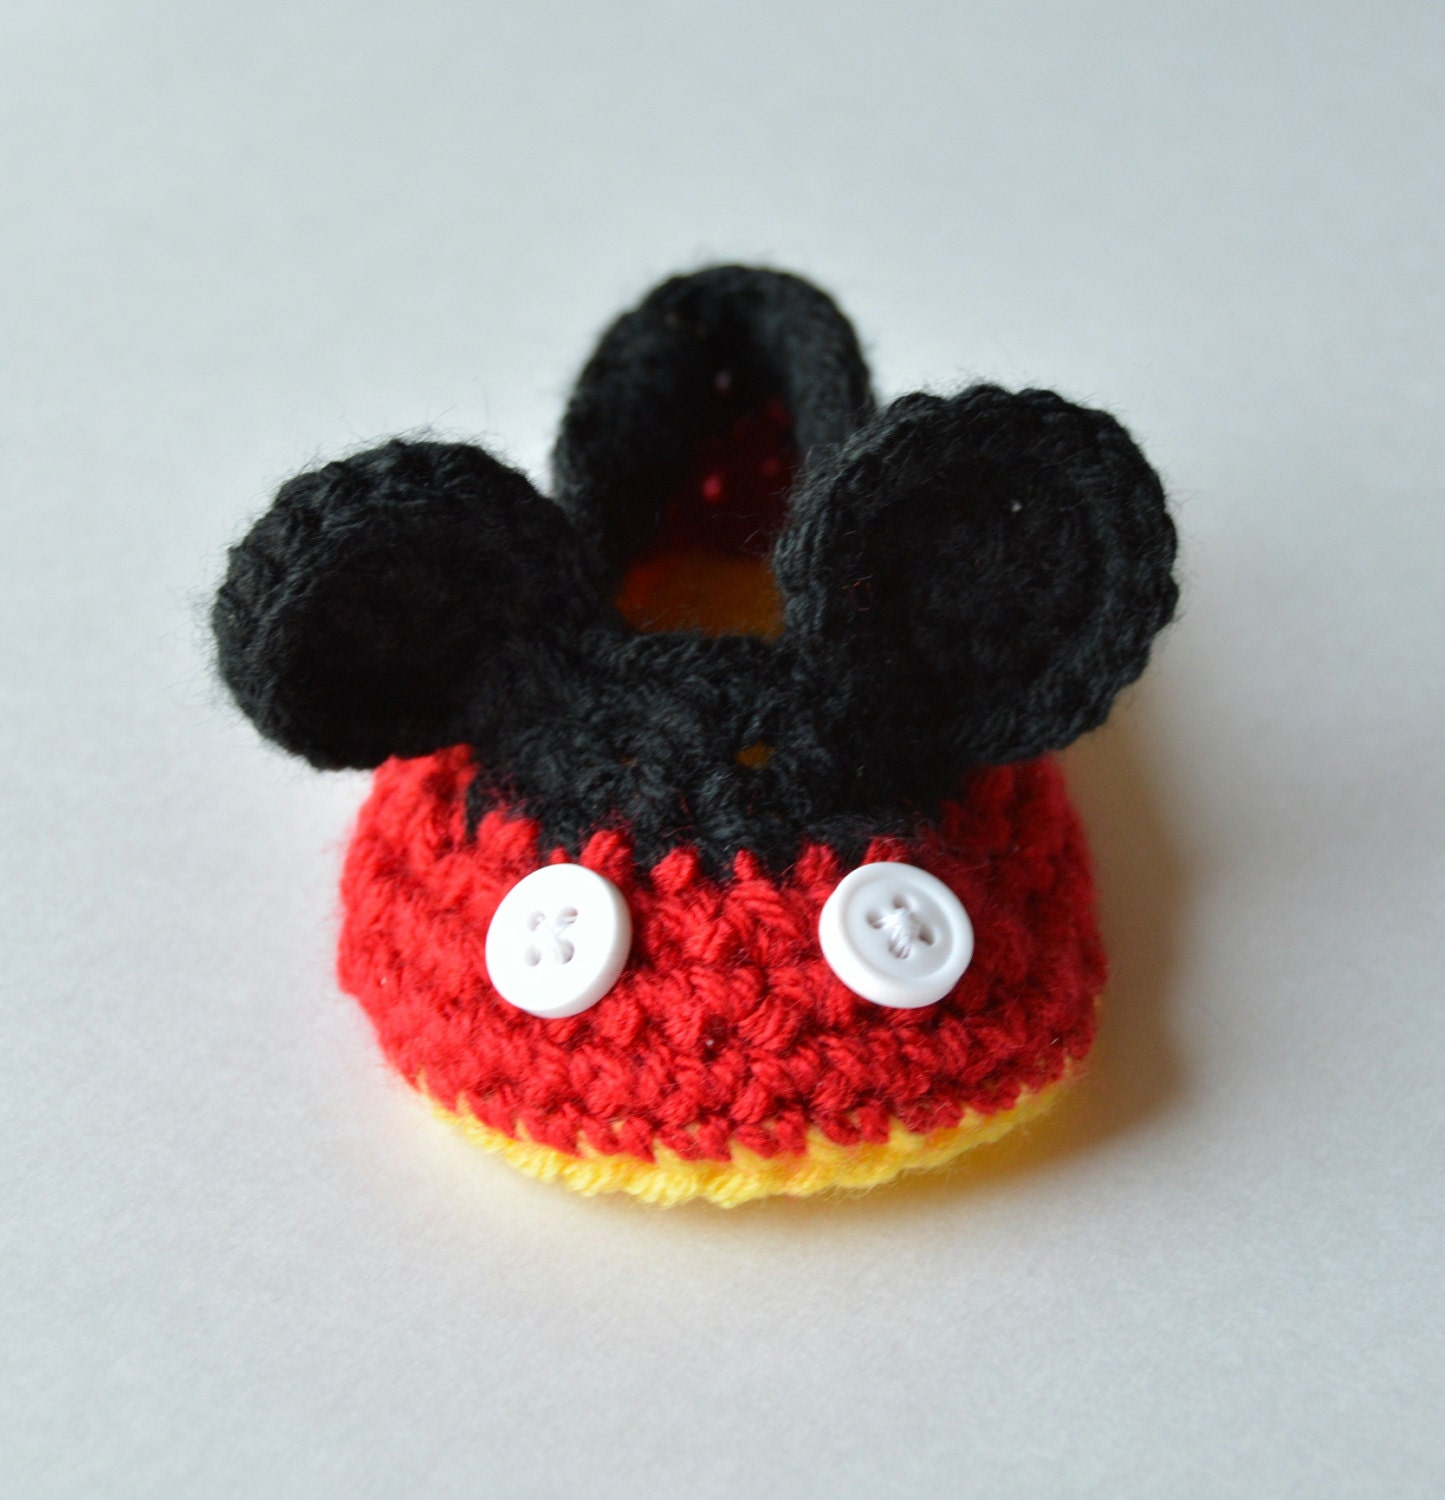 Free Crochet Patterns For Baby Mickey Mouse : Disney Mickey Mouse Baby Booties Crib Shoes Adorable New